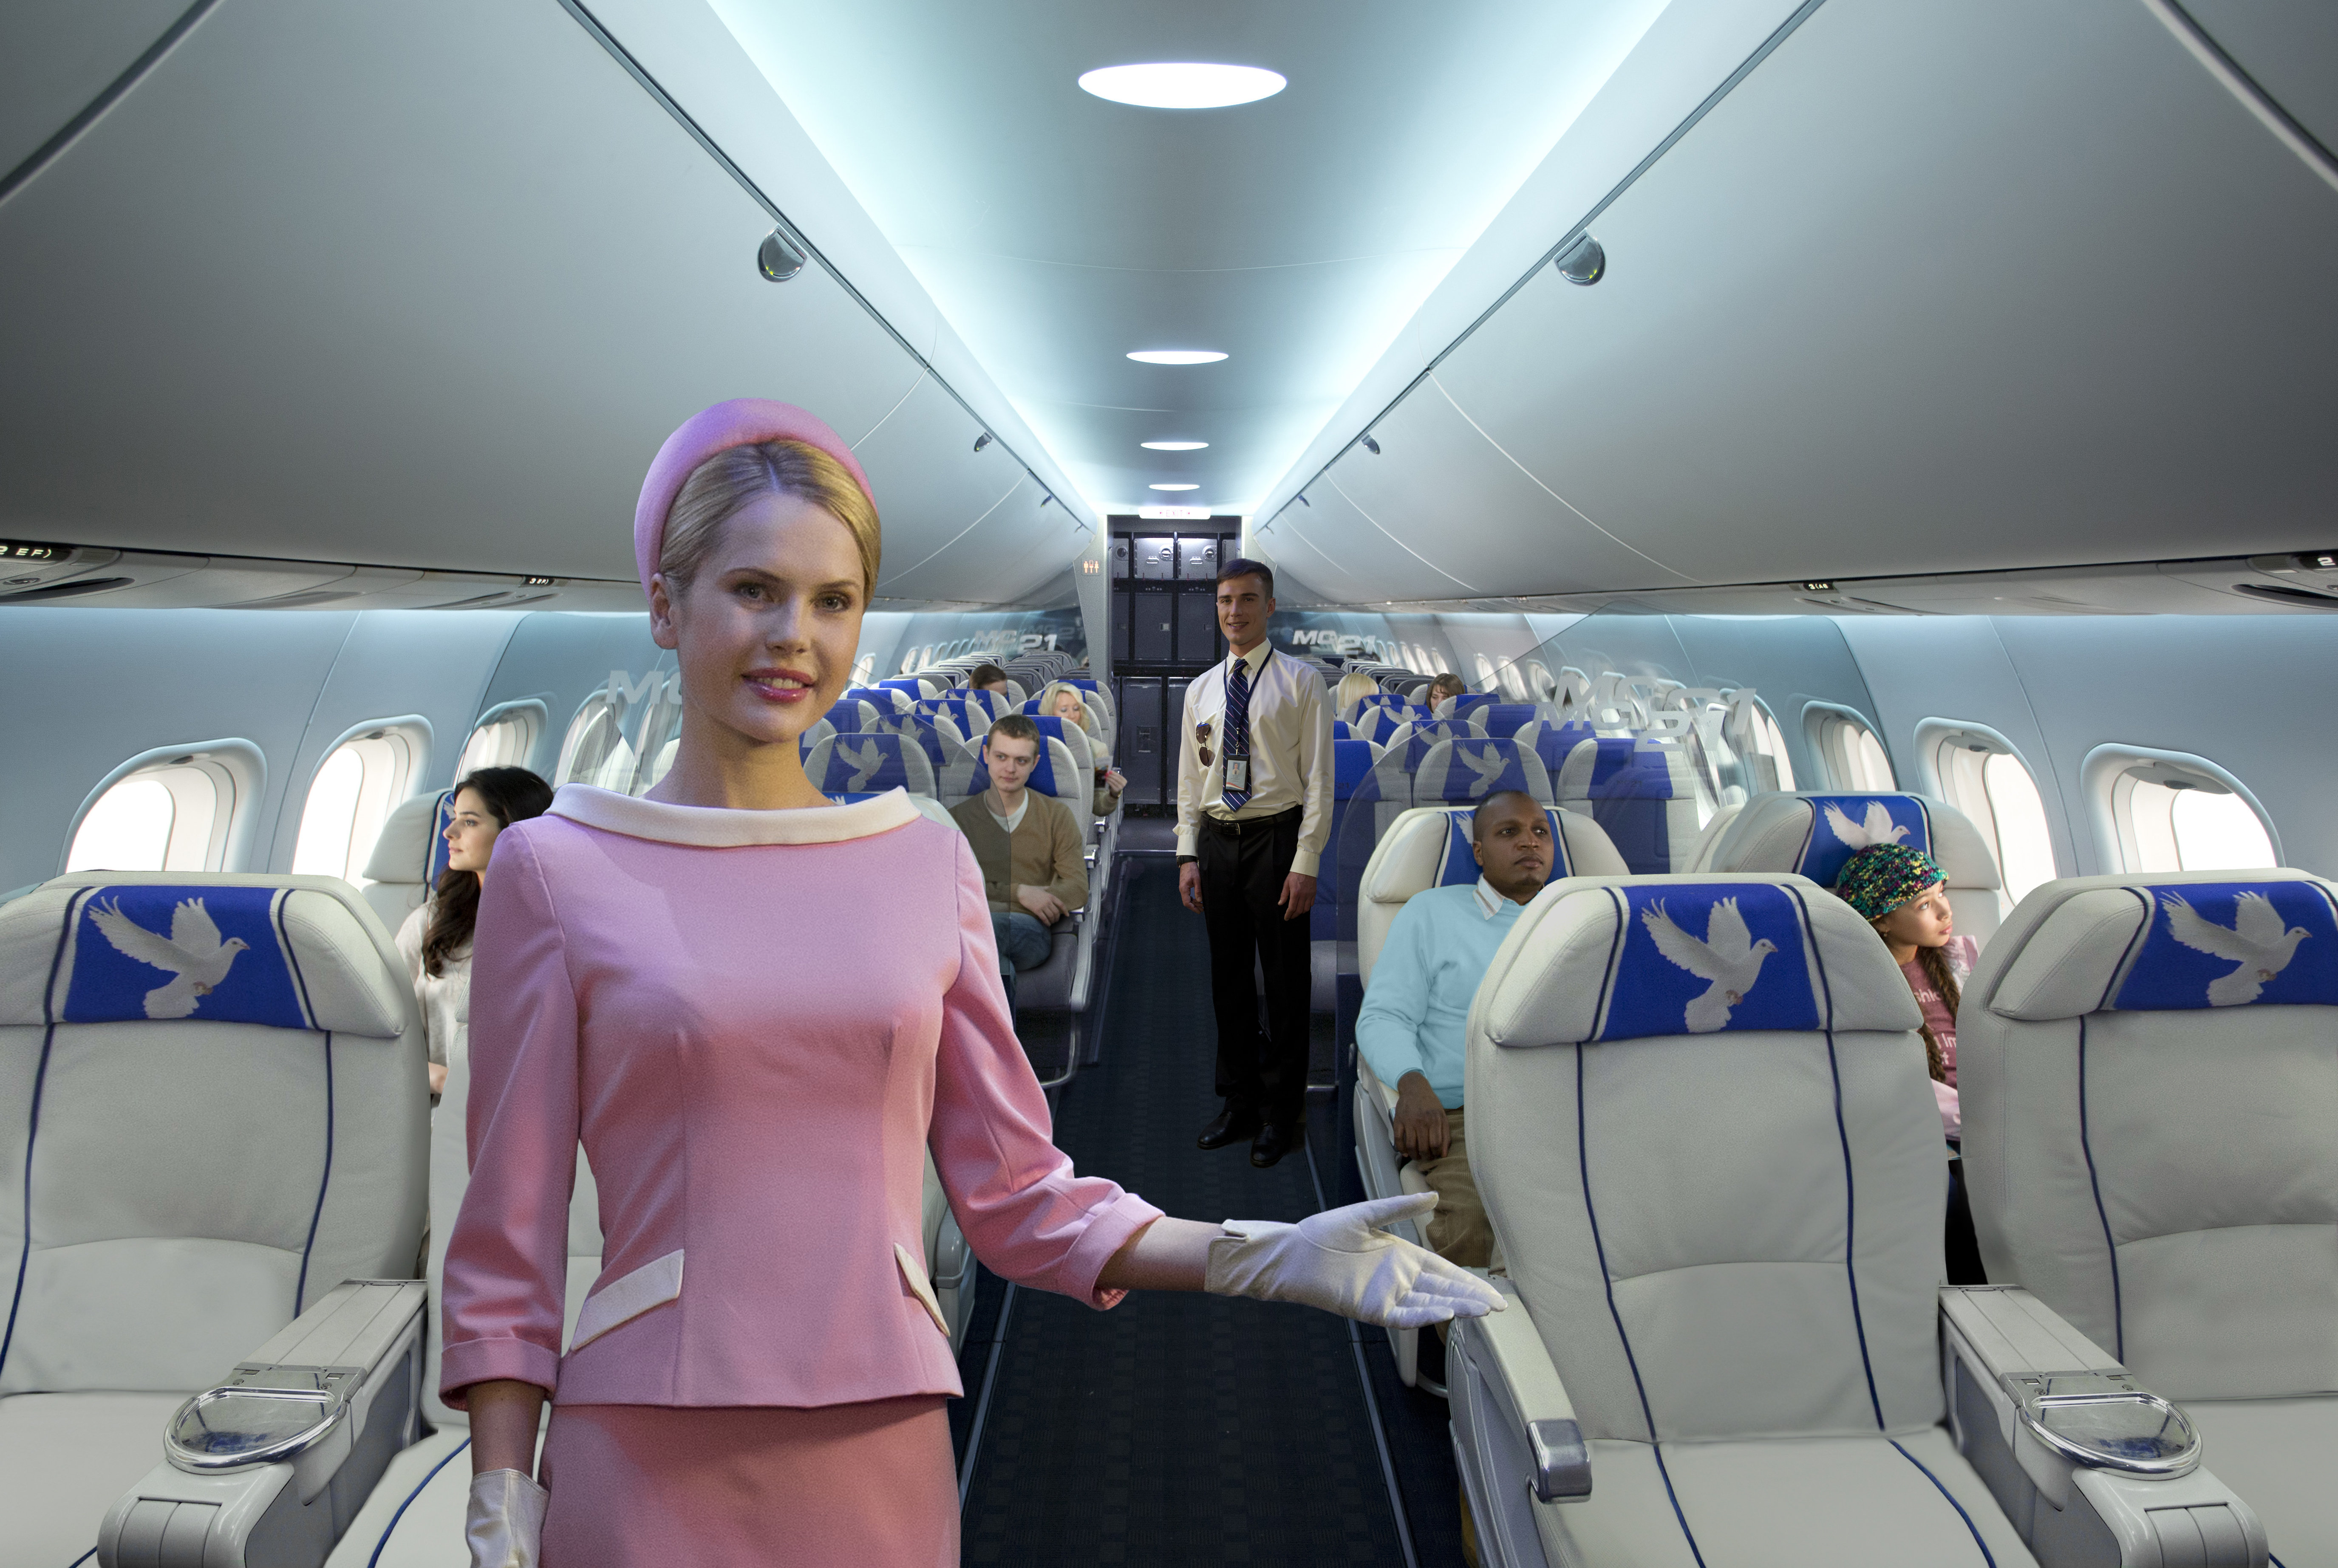 Passenger area of the MC-21, with a notably roomy aisle space.